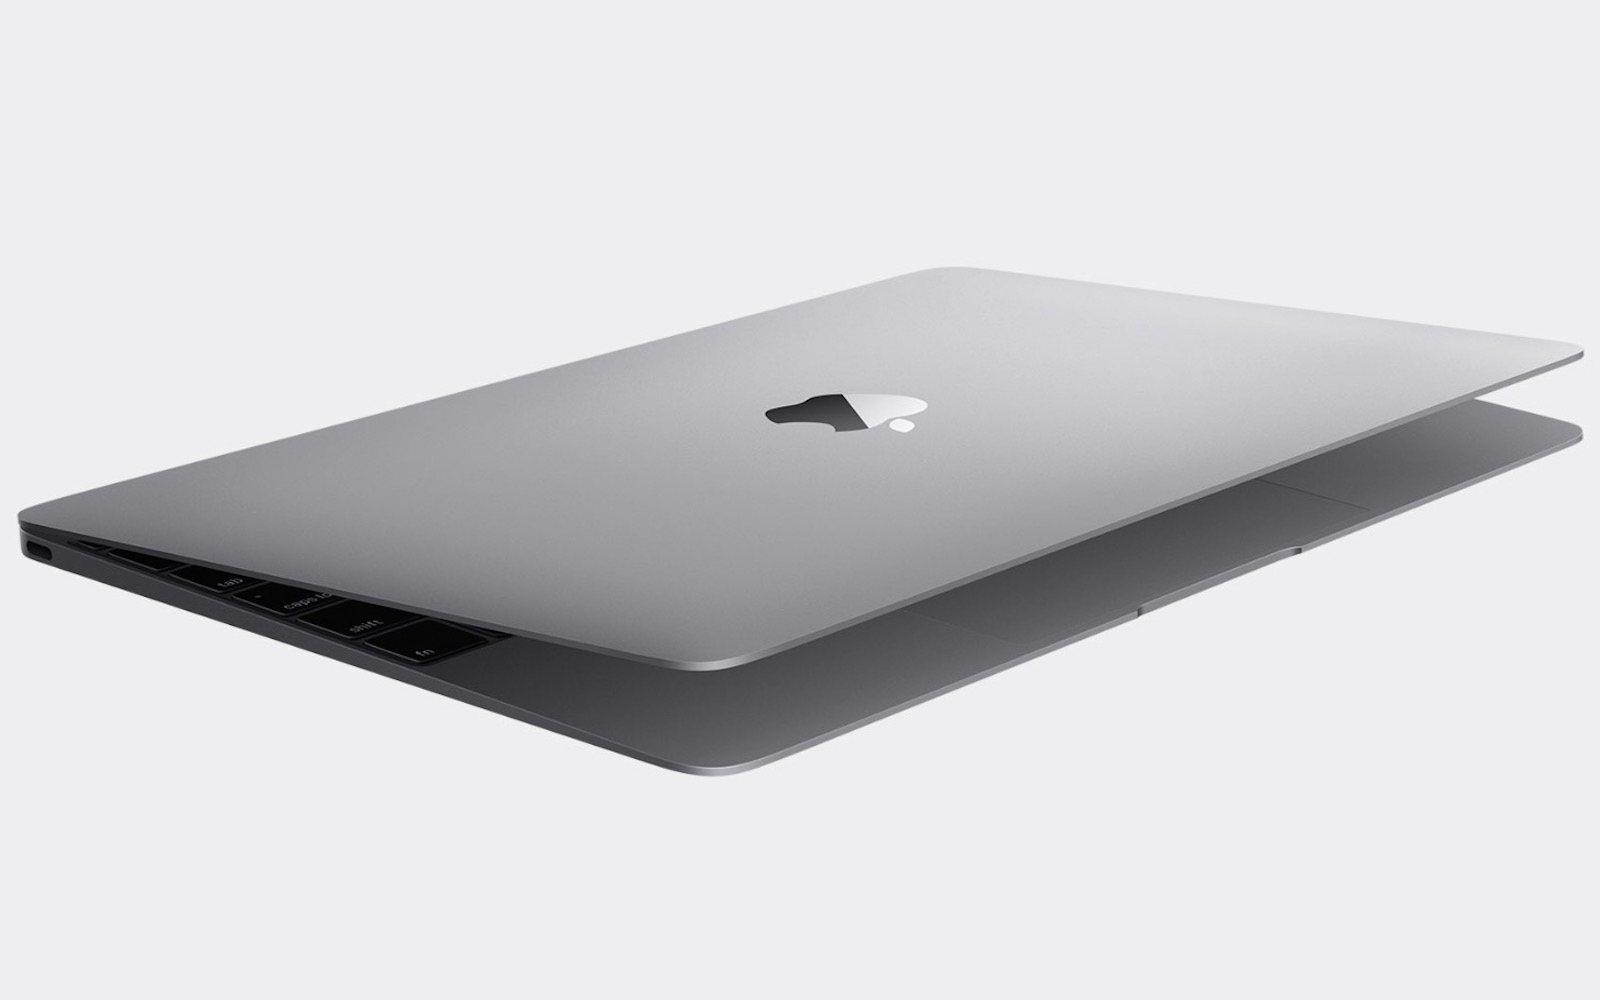 12 inch macbook